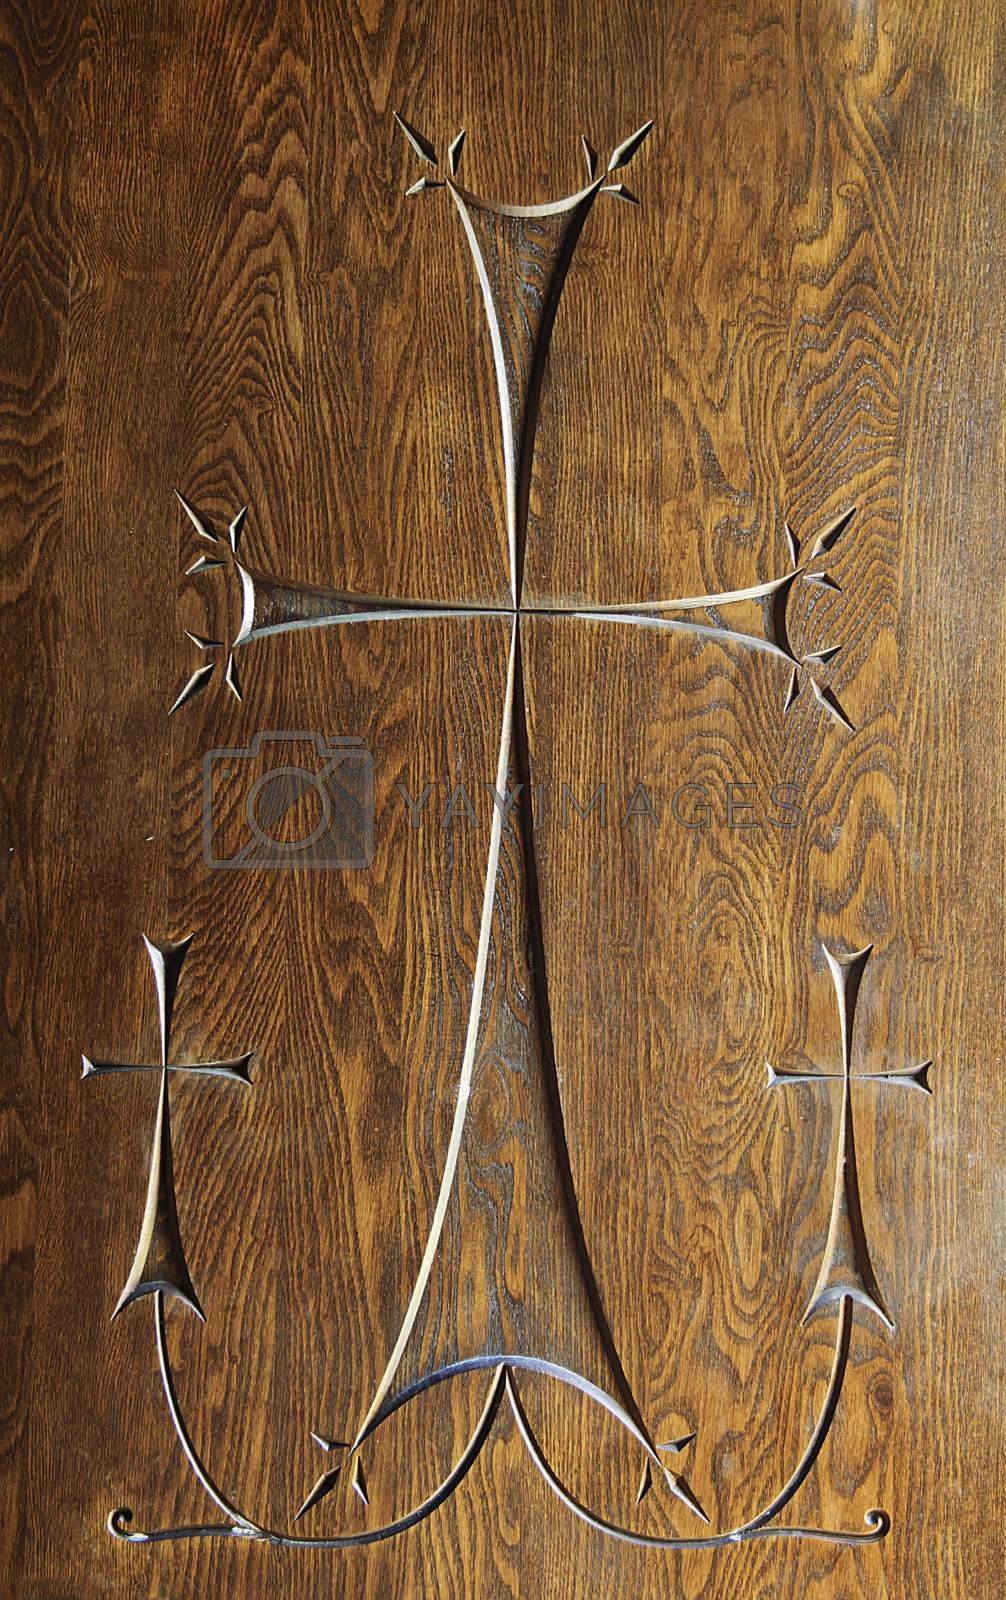 Carving of 3 cross with one large central cross joined to 2 smaller crosses on either side. Carved into an antique woodern door.